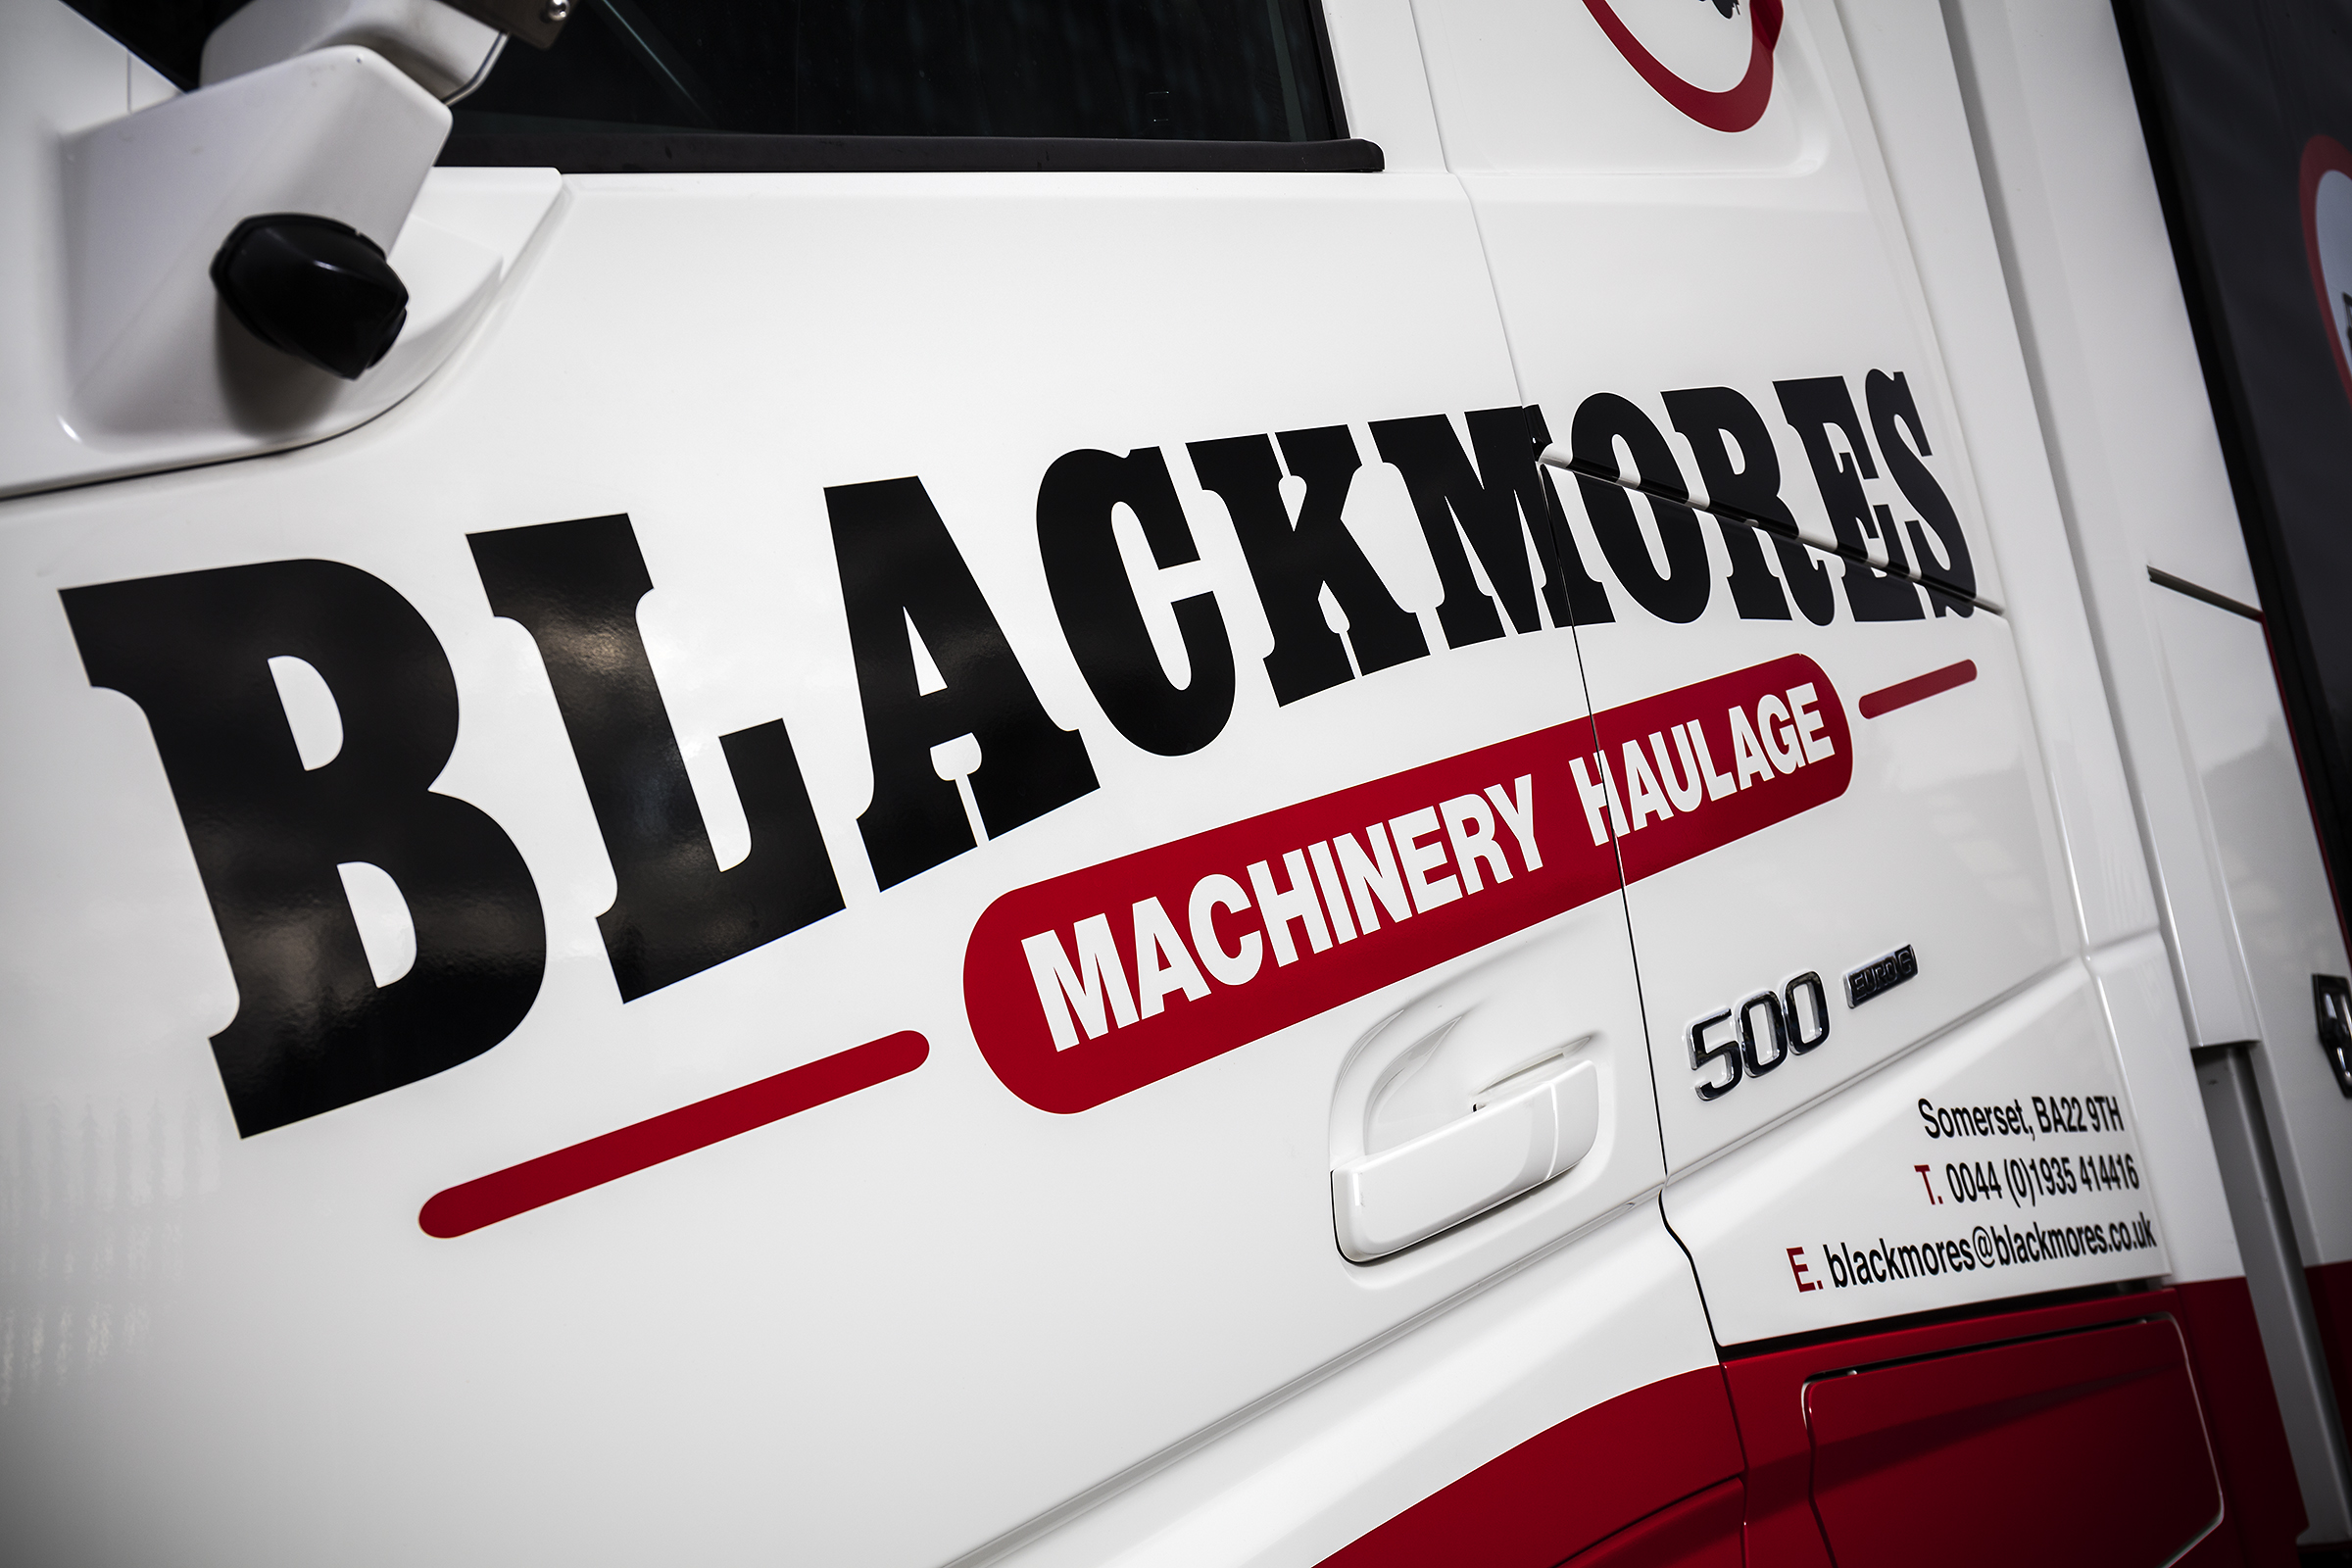 Blackmores Machinery Haulage Ltd